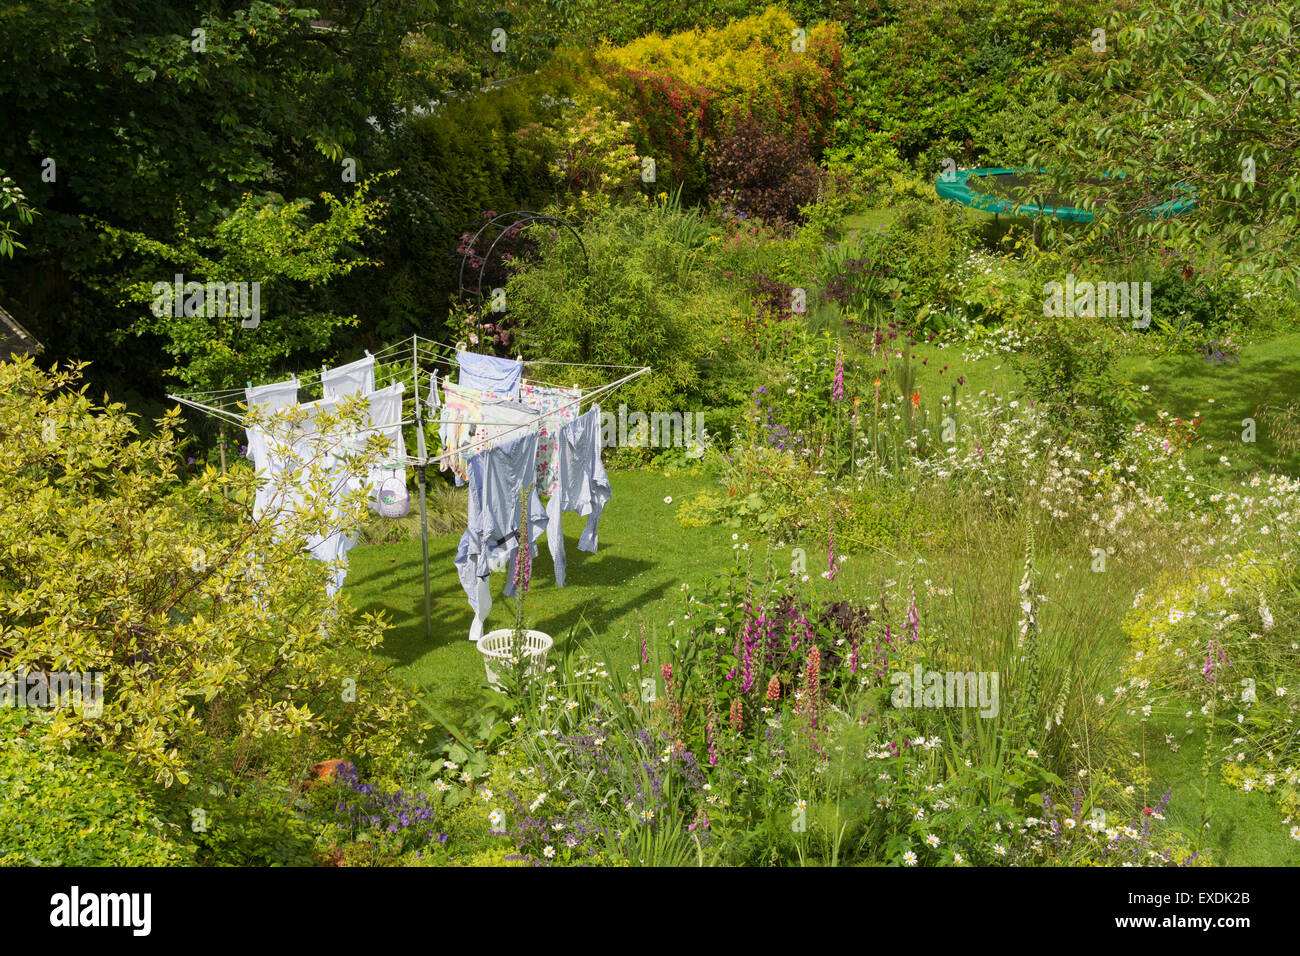 Washing hanging to dry on rotary airer washing line in flower filled family wildlife garden in Scotland, UK - Stock Image